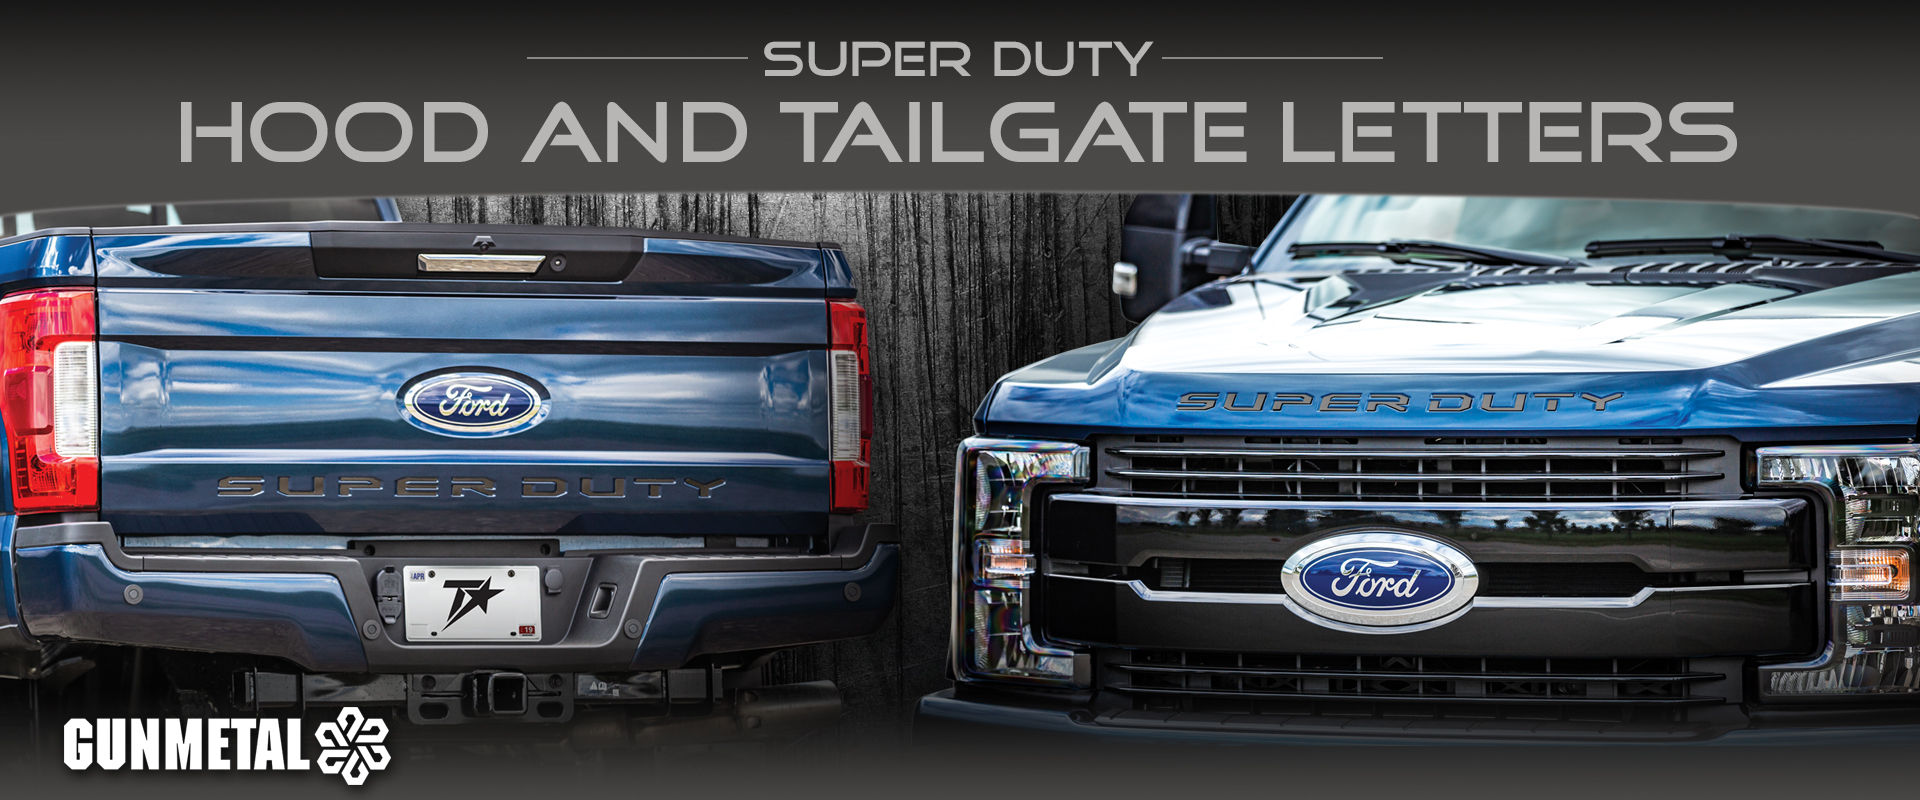 New Ford Super Duty Gunmetal Letters